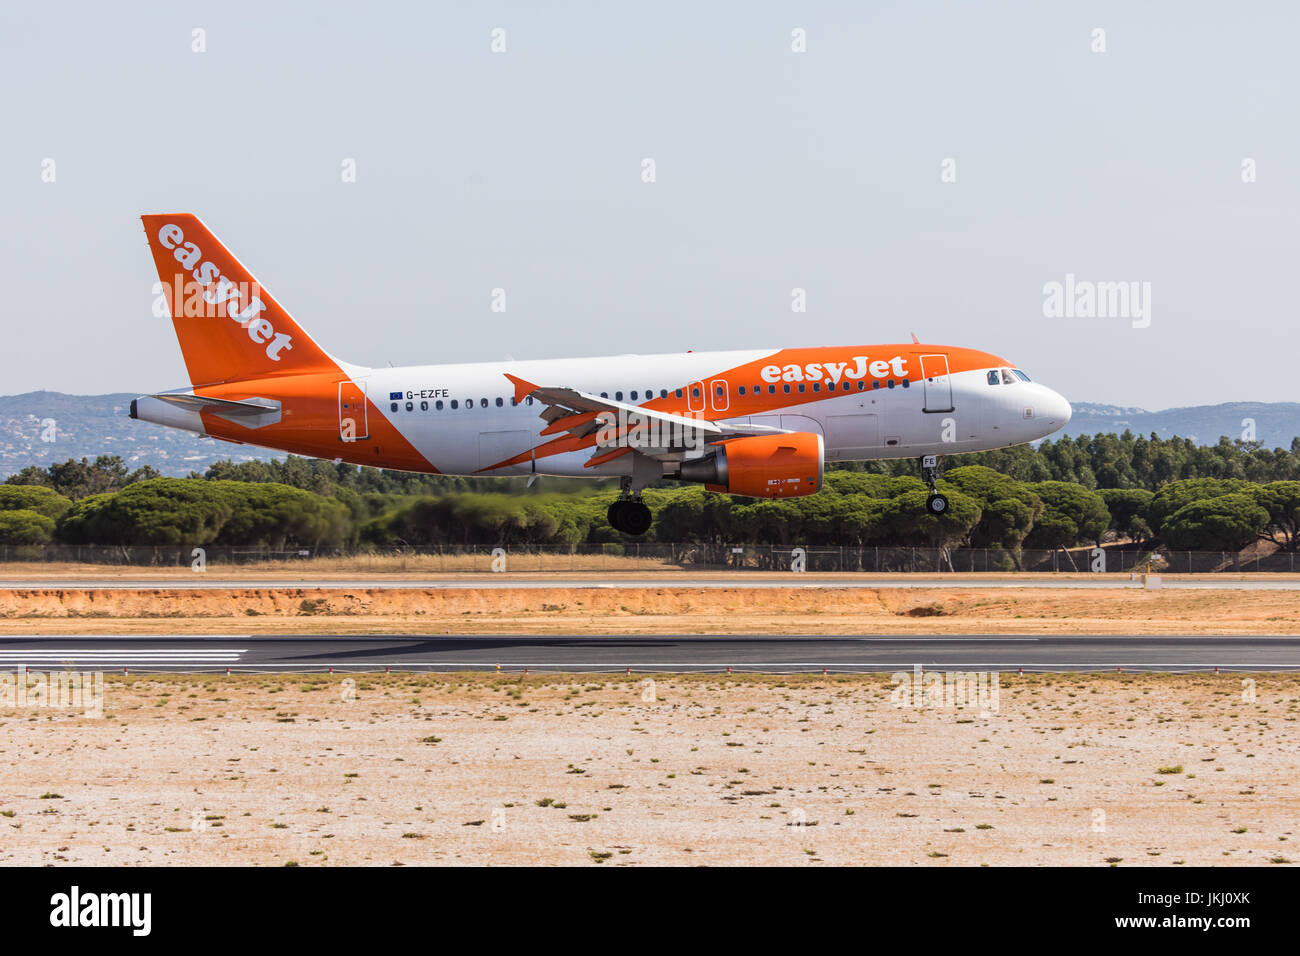 FARO, PORTUGAL - Juny 18, 2017 : easyJet Flights aeroplane landing on Faro International Airport. Airport - Stock Image